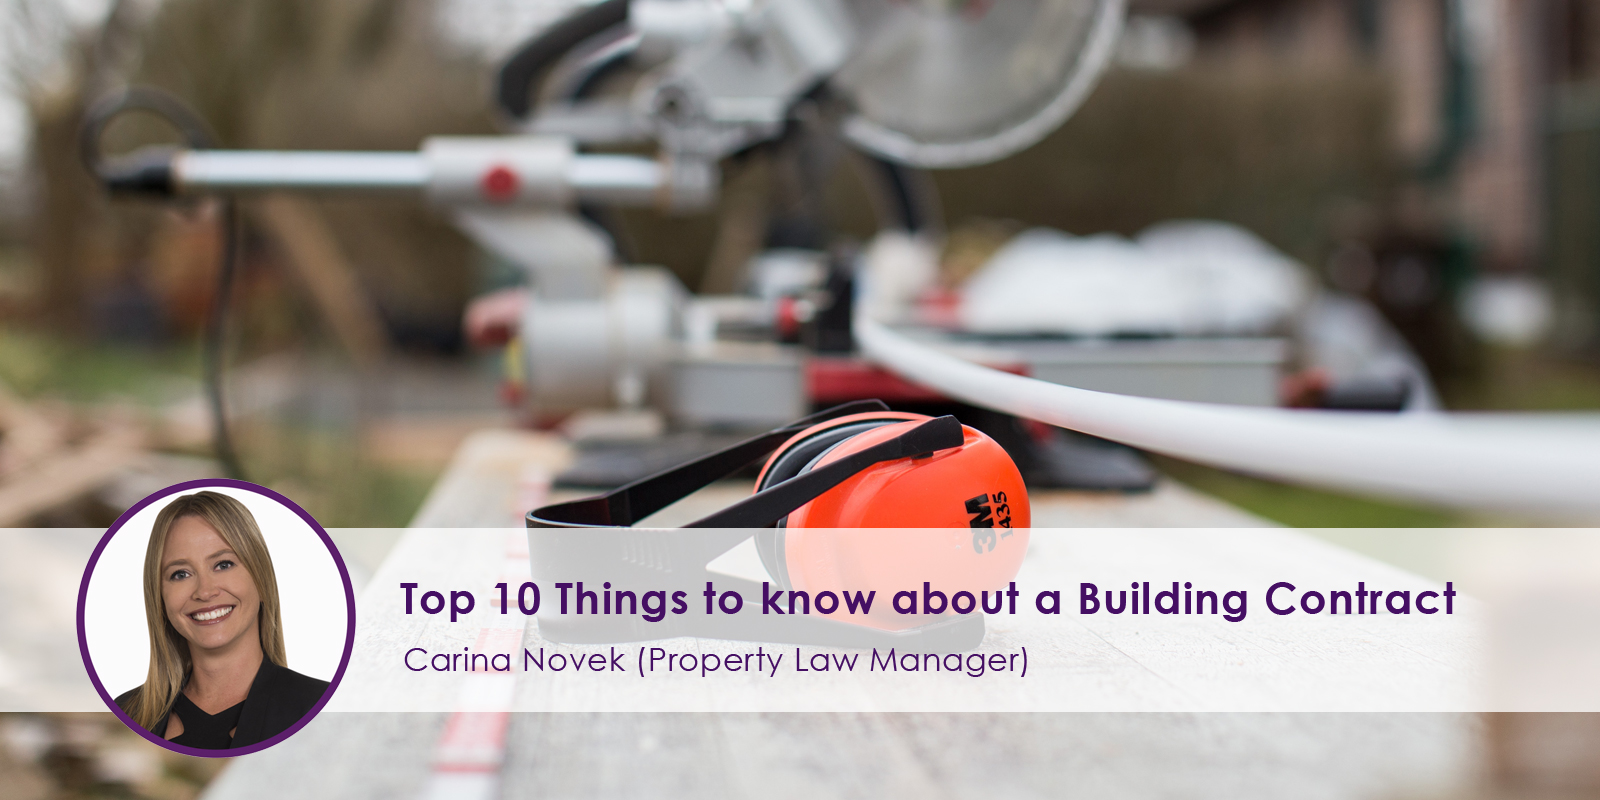 Top-10-Things-to-know-about-a-Building-Contract.jpg